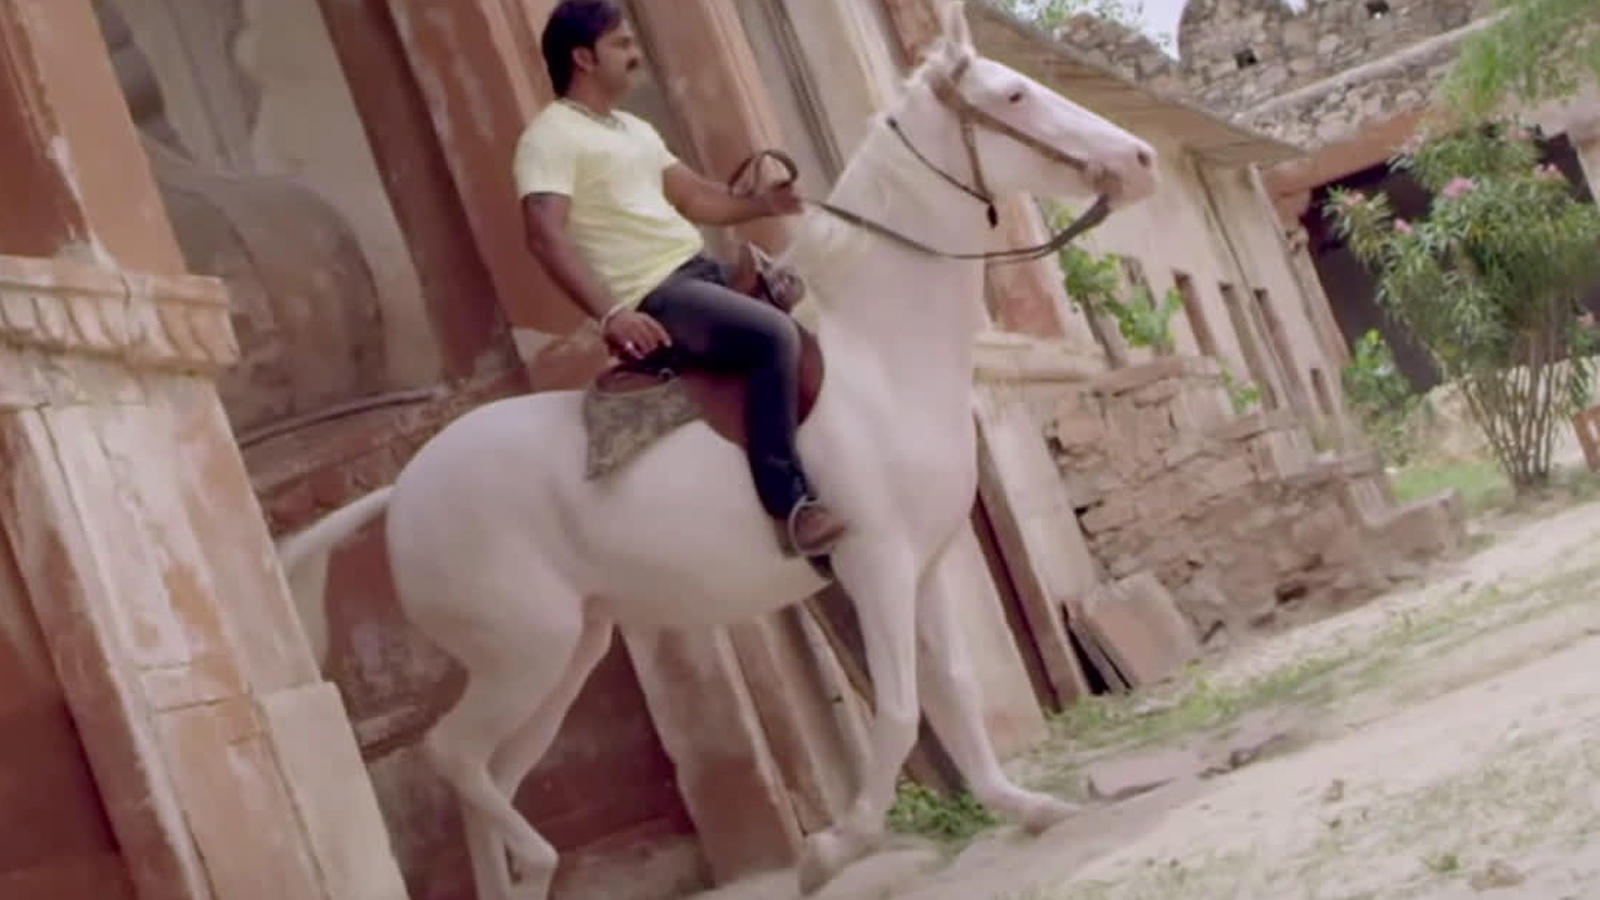 bhojpuri-actor-pawan-singhs-new-song-mere-marad-mahoday-ji-from-movie-sher-singh-is-out